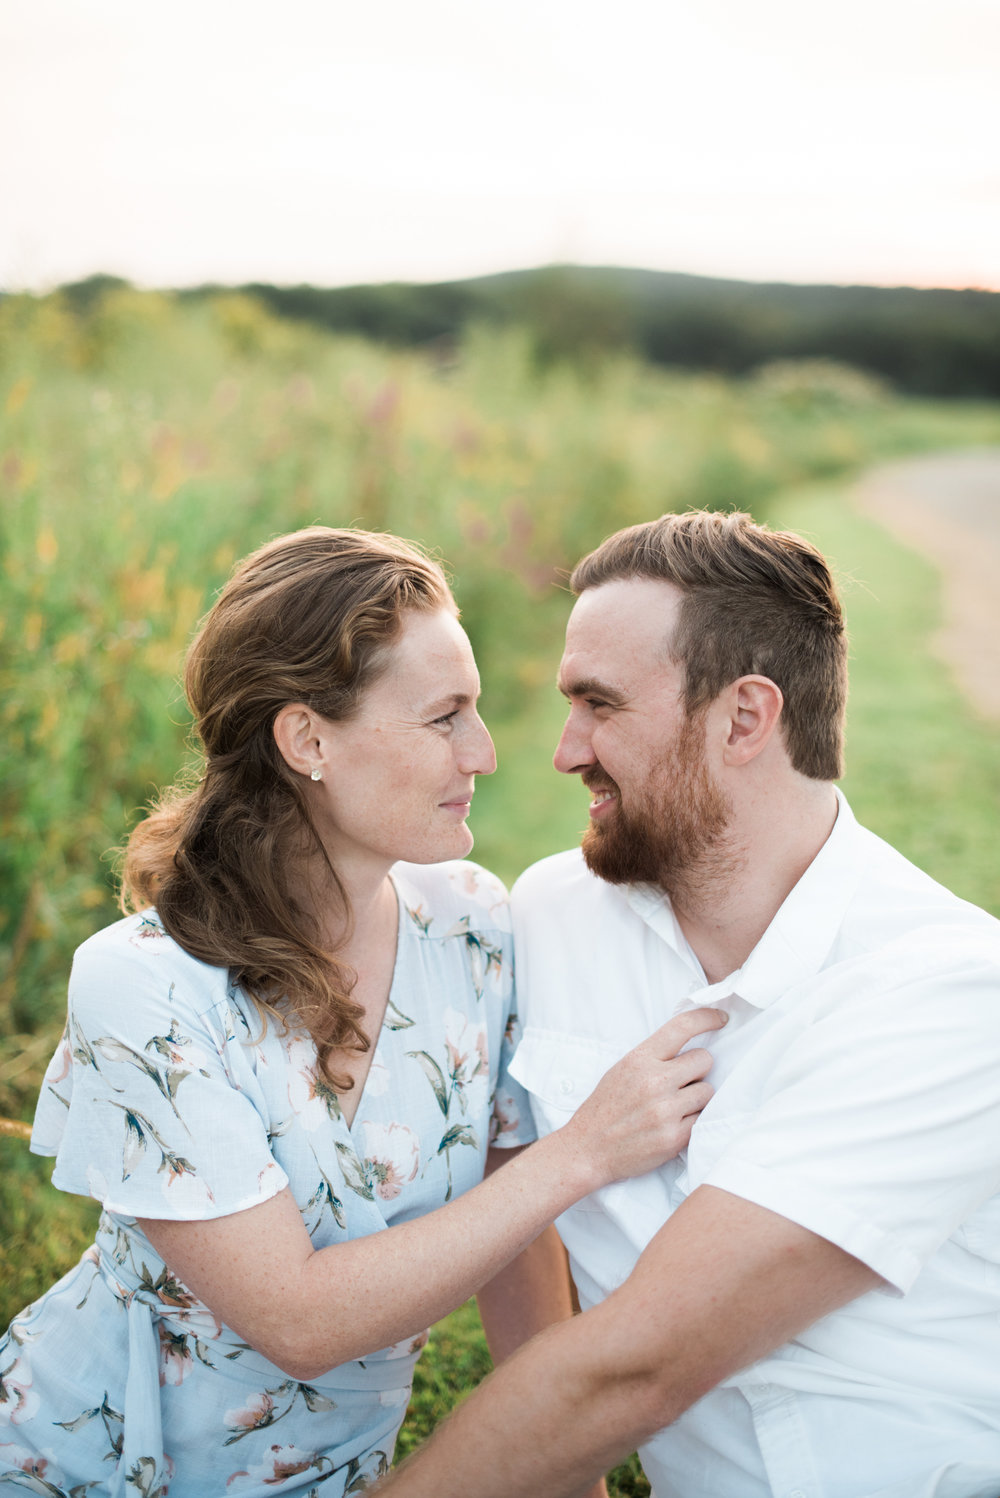 Intimate Wedding Photography in Western MA